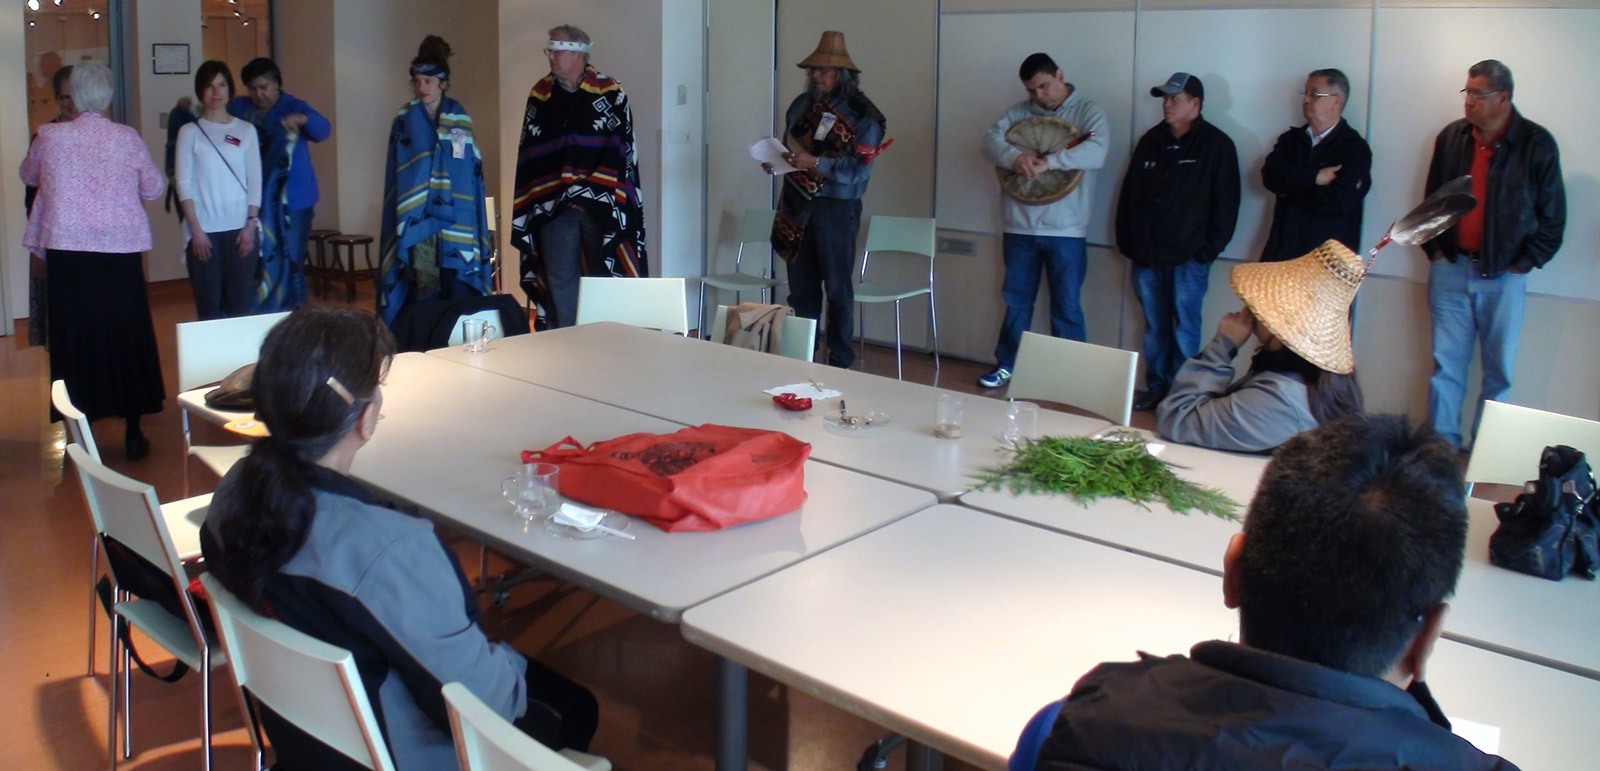 A red bag and some cedar boughs lie on a table. Three people sit at the table, while others stand alongside.